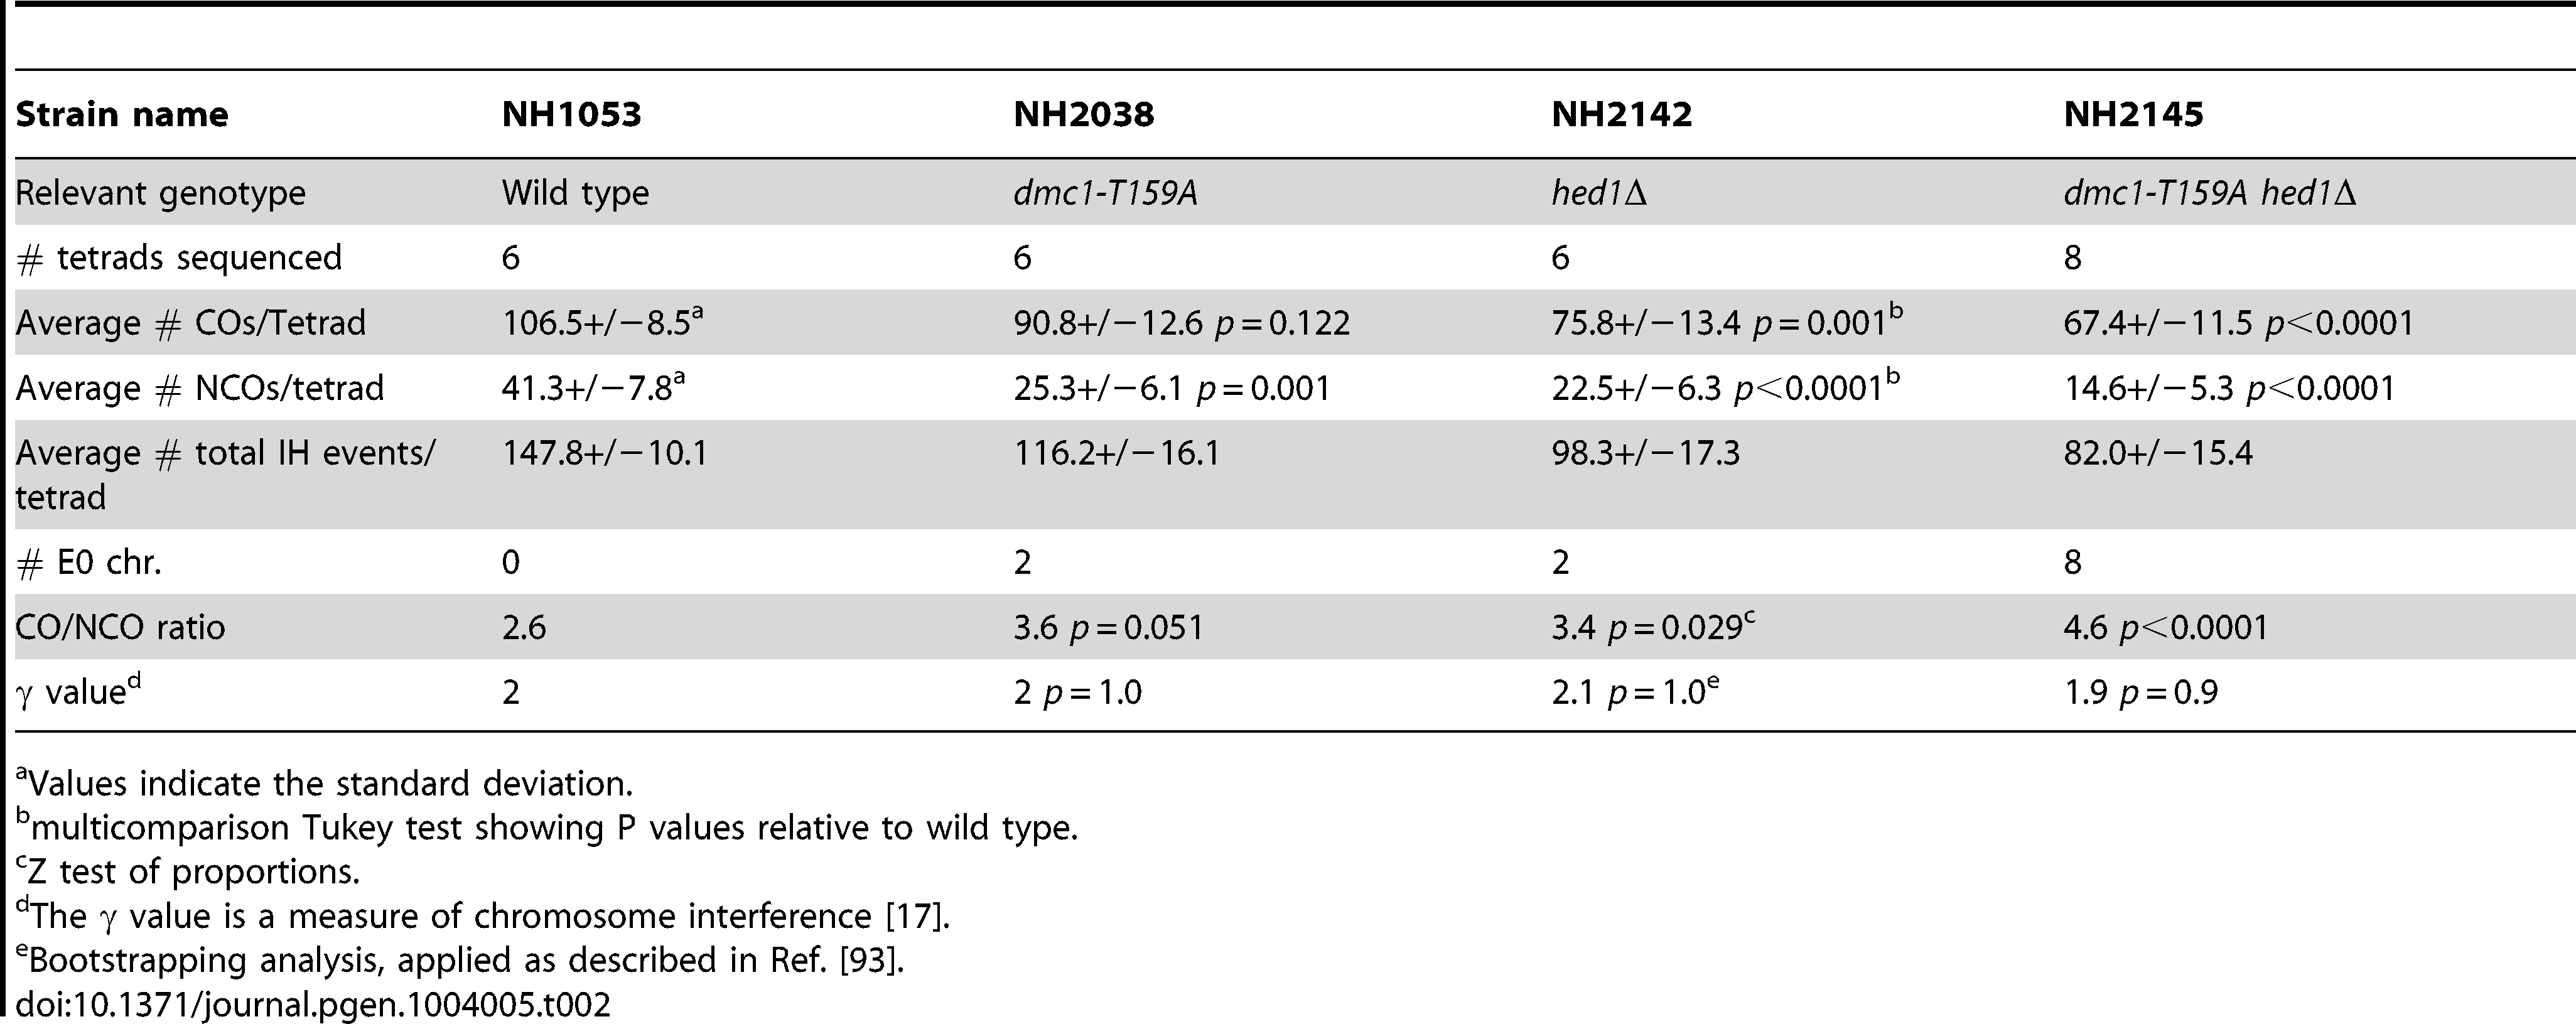 Various phenotypes obtained from sequencing tetrads from various strains derived from the S288c/YJM789 background.